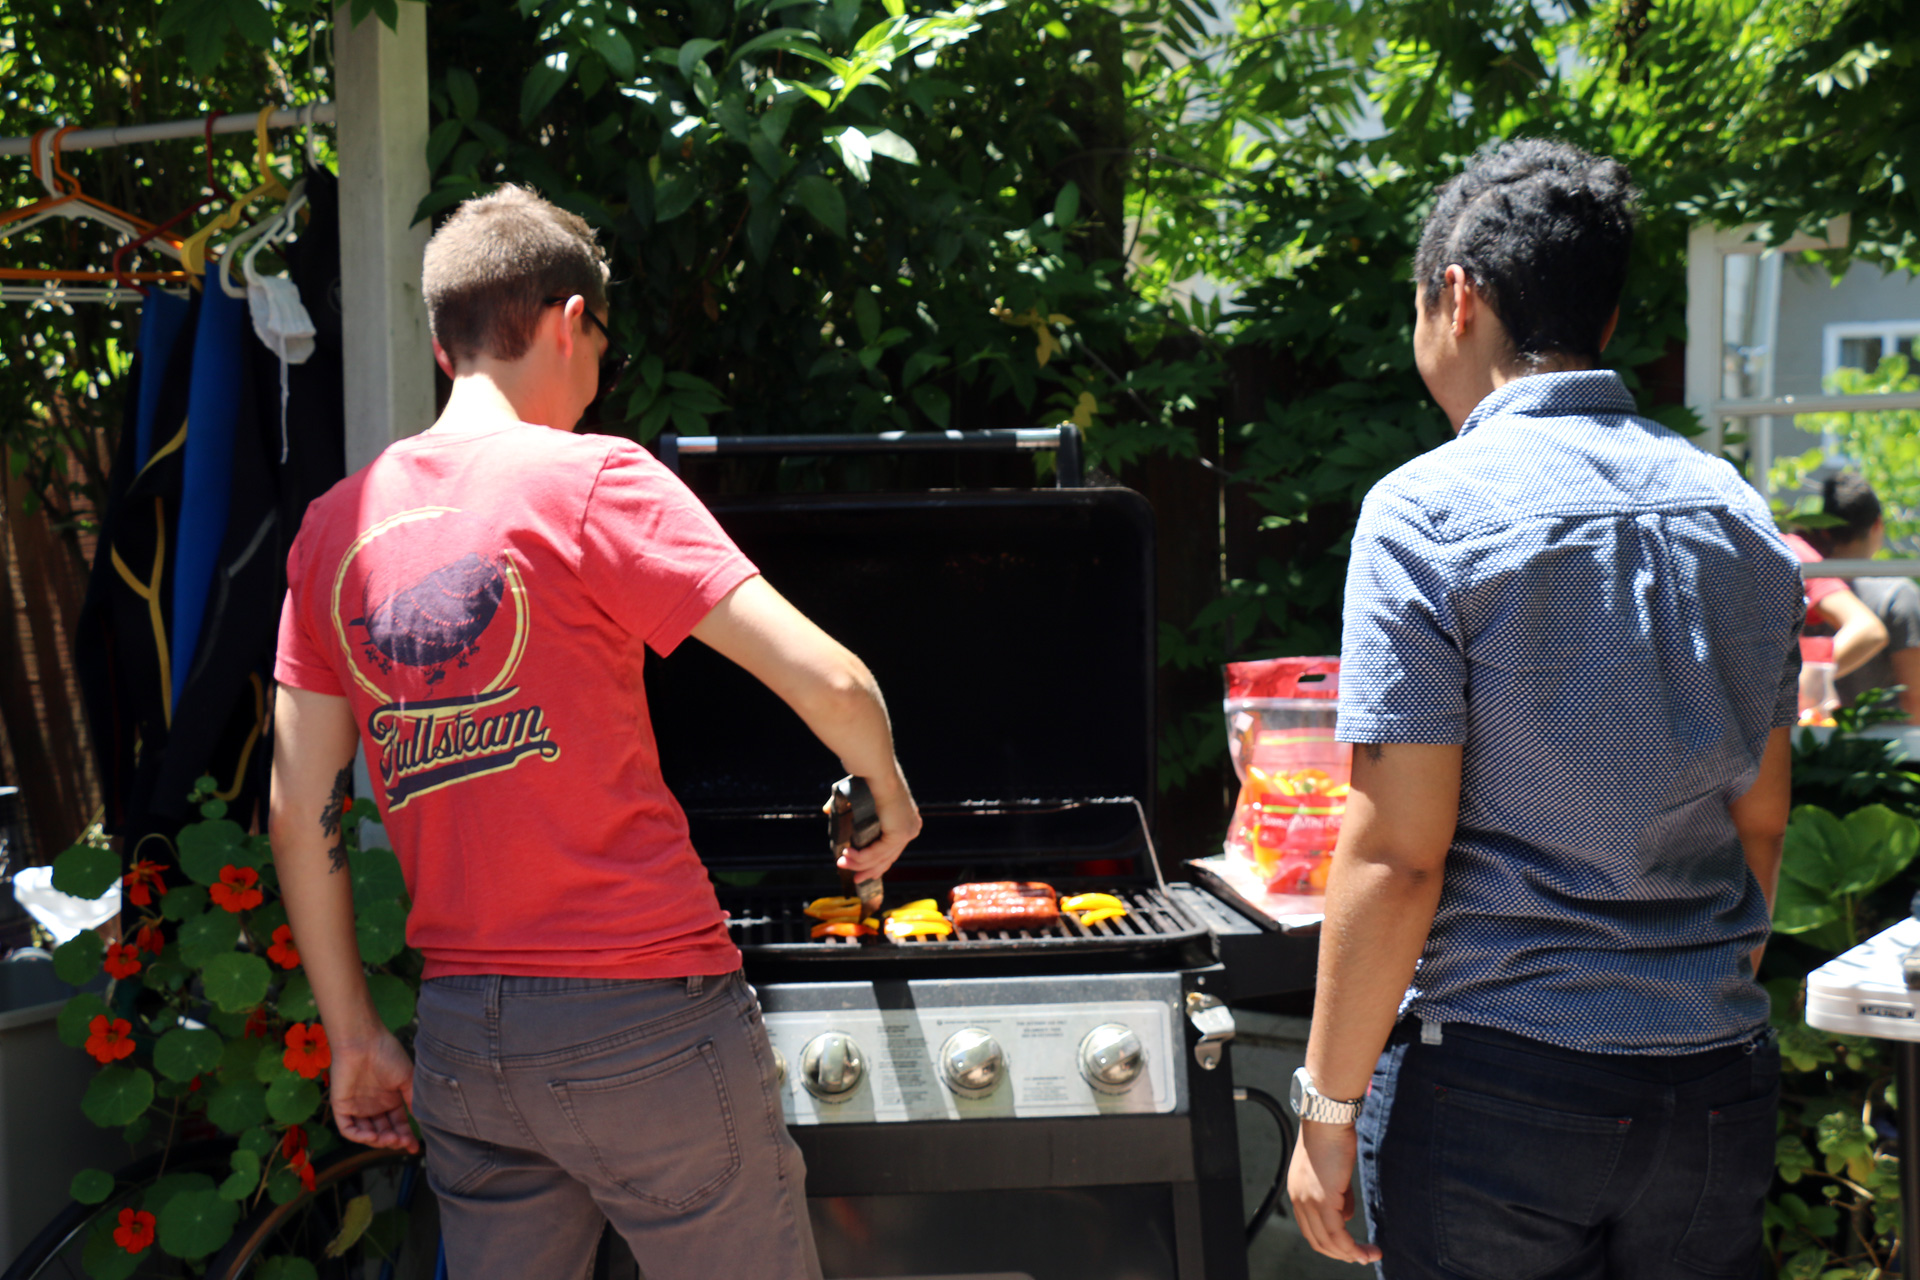 Summerhill grills up hot dogs for the group.